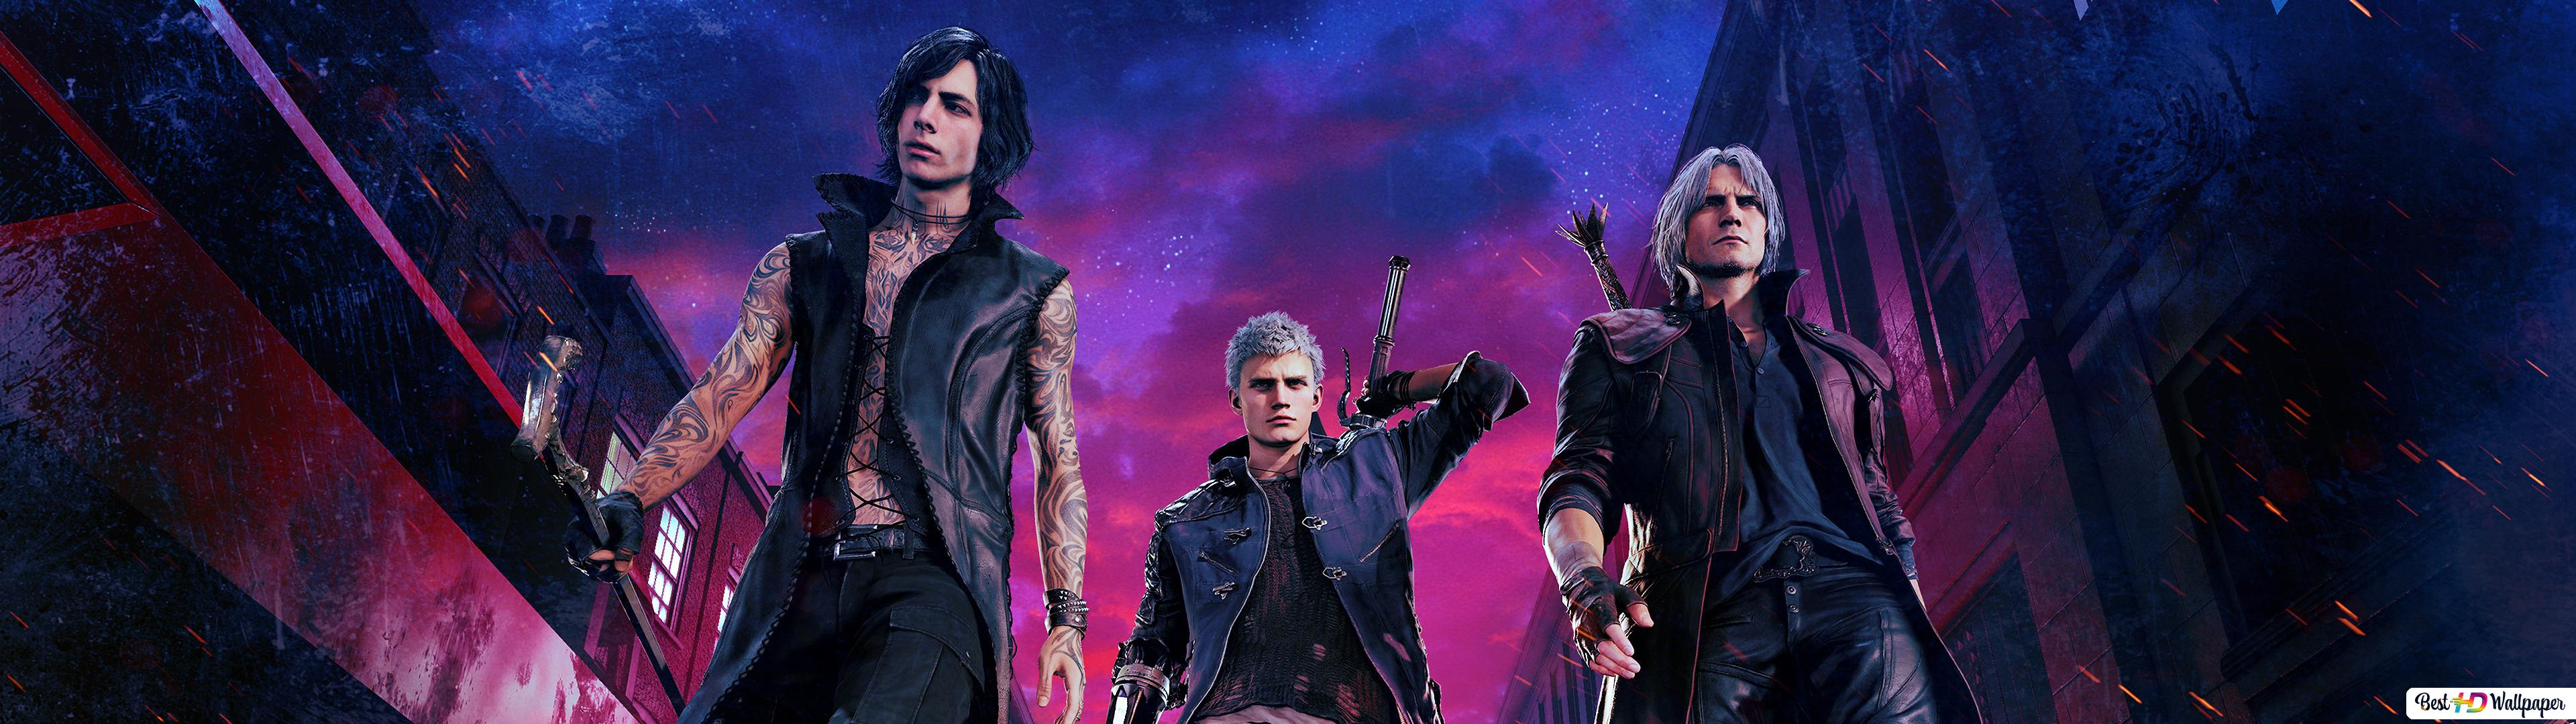 Devil May Cry 5 V Nero Dante Hd Wallpaper Download